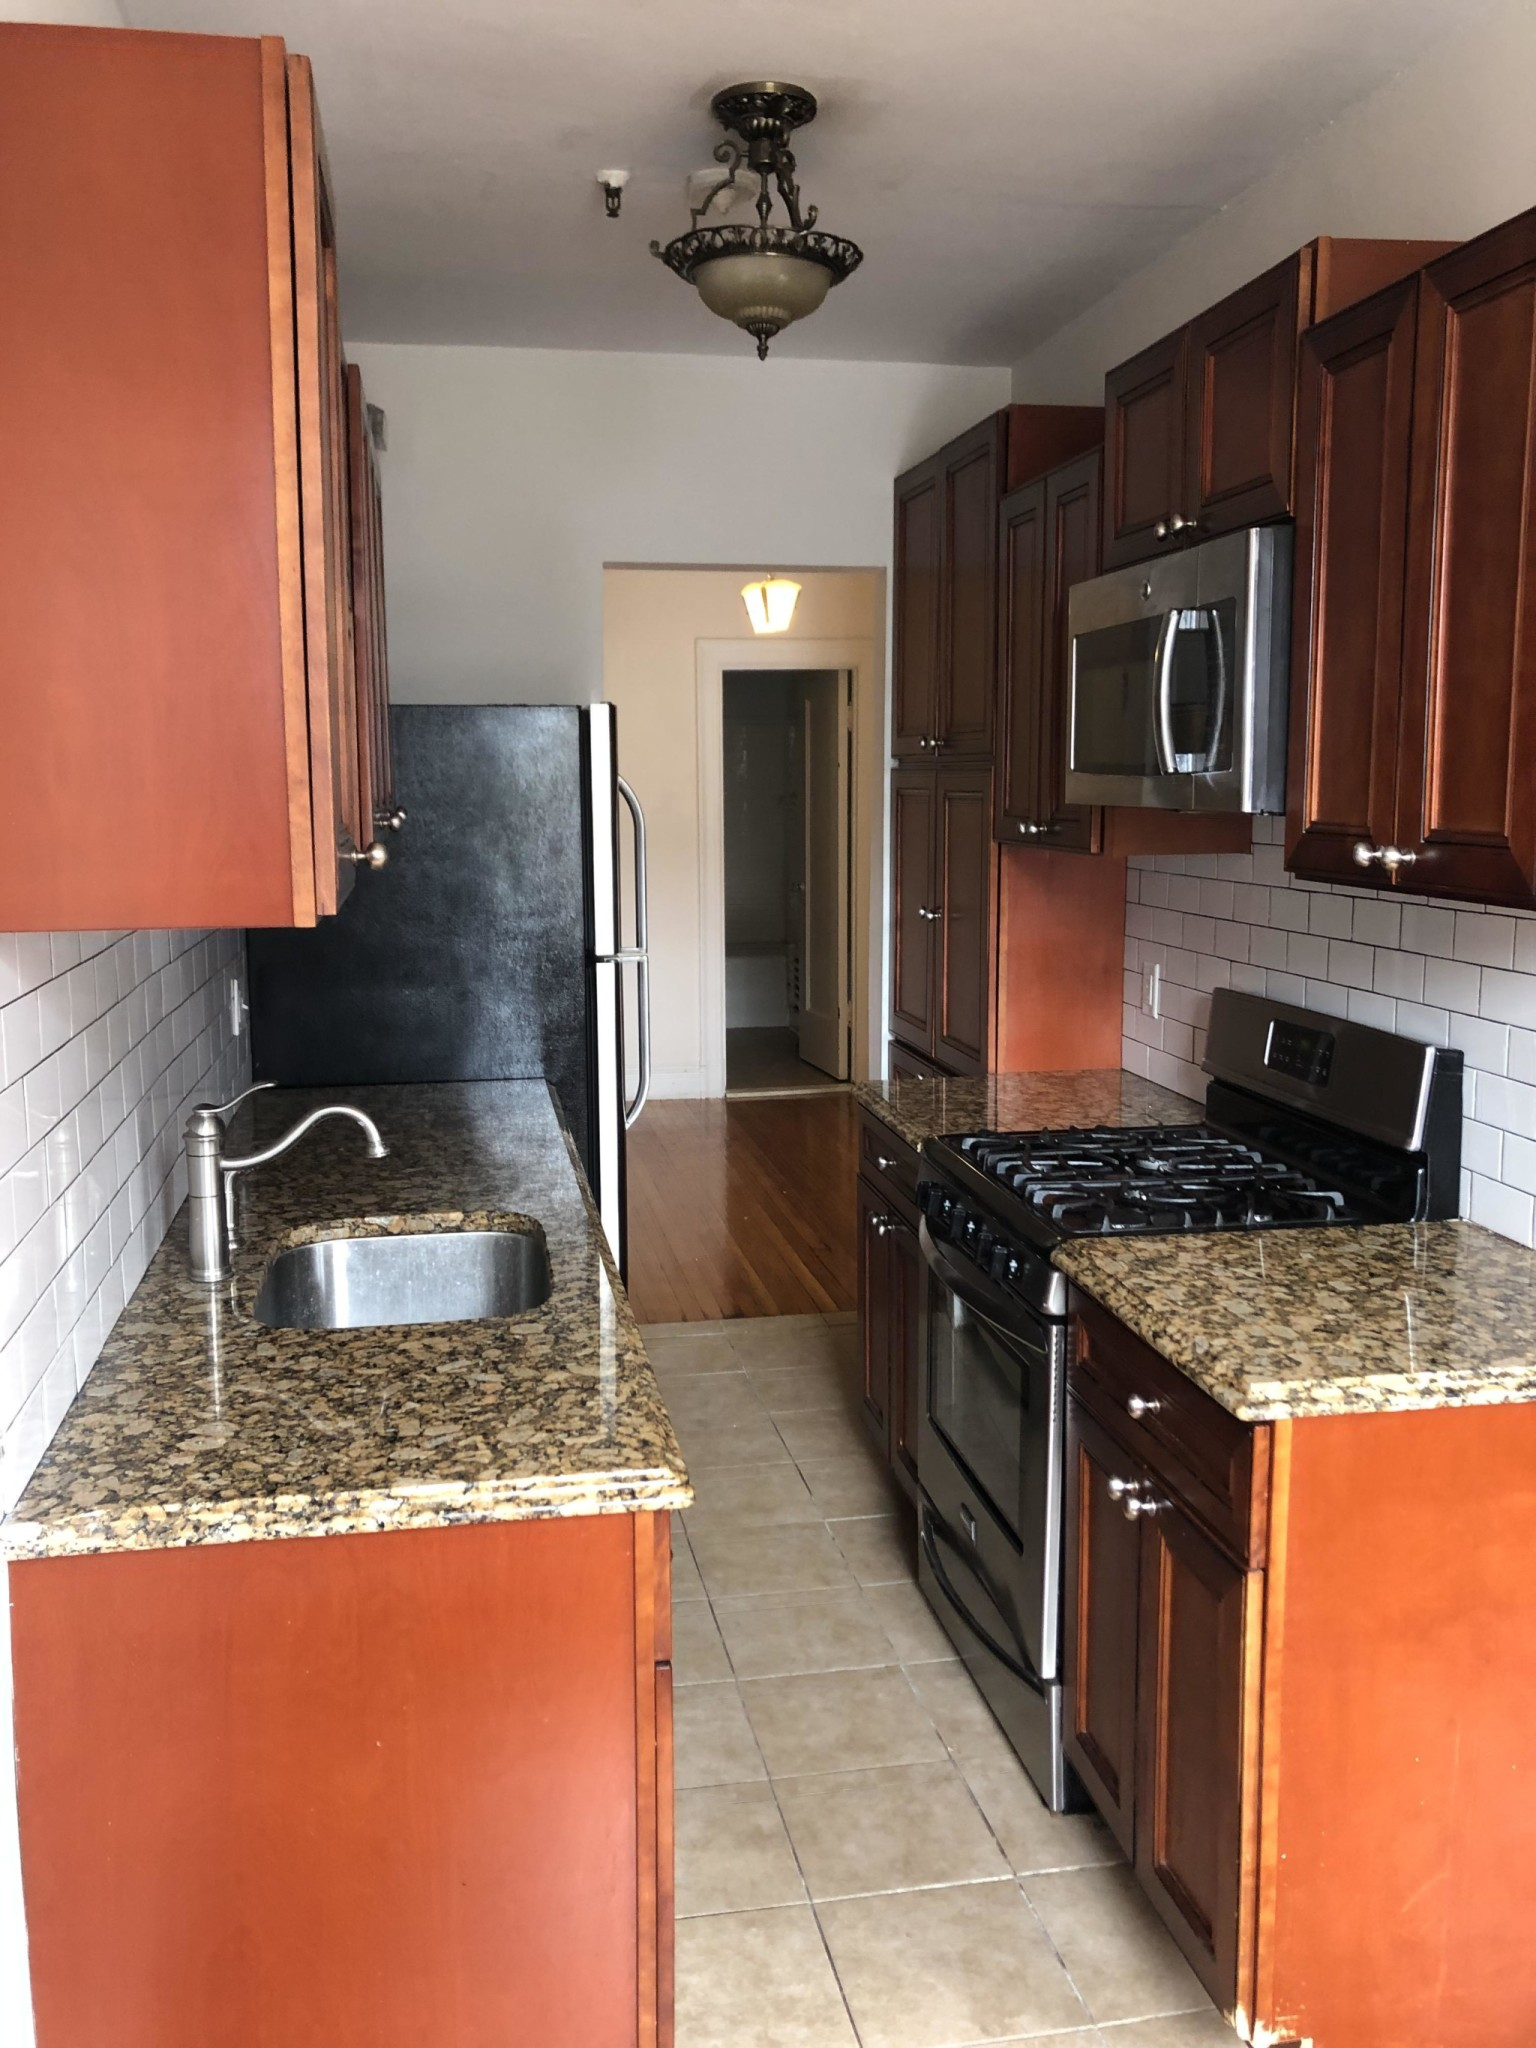 1 Bed, 1 Bath apartment in Boston, Back Bay for $2,650